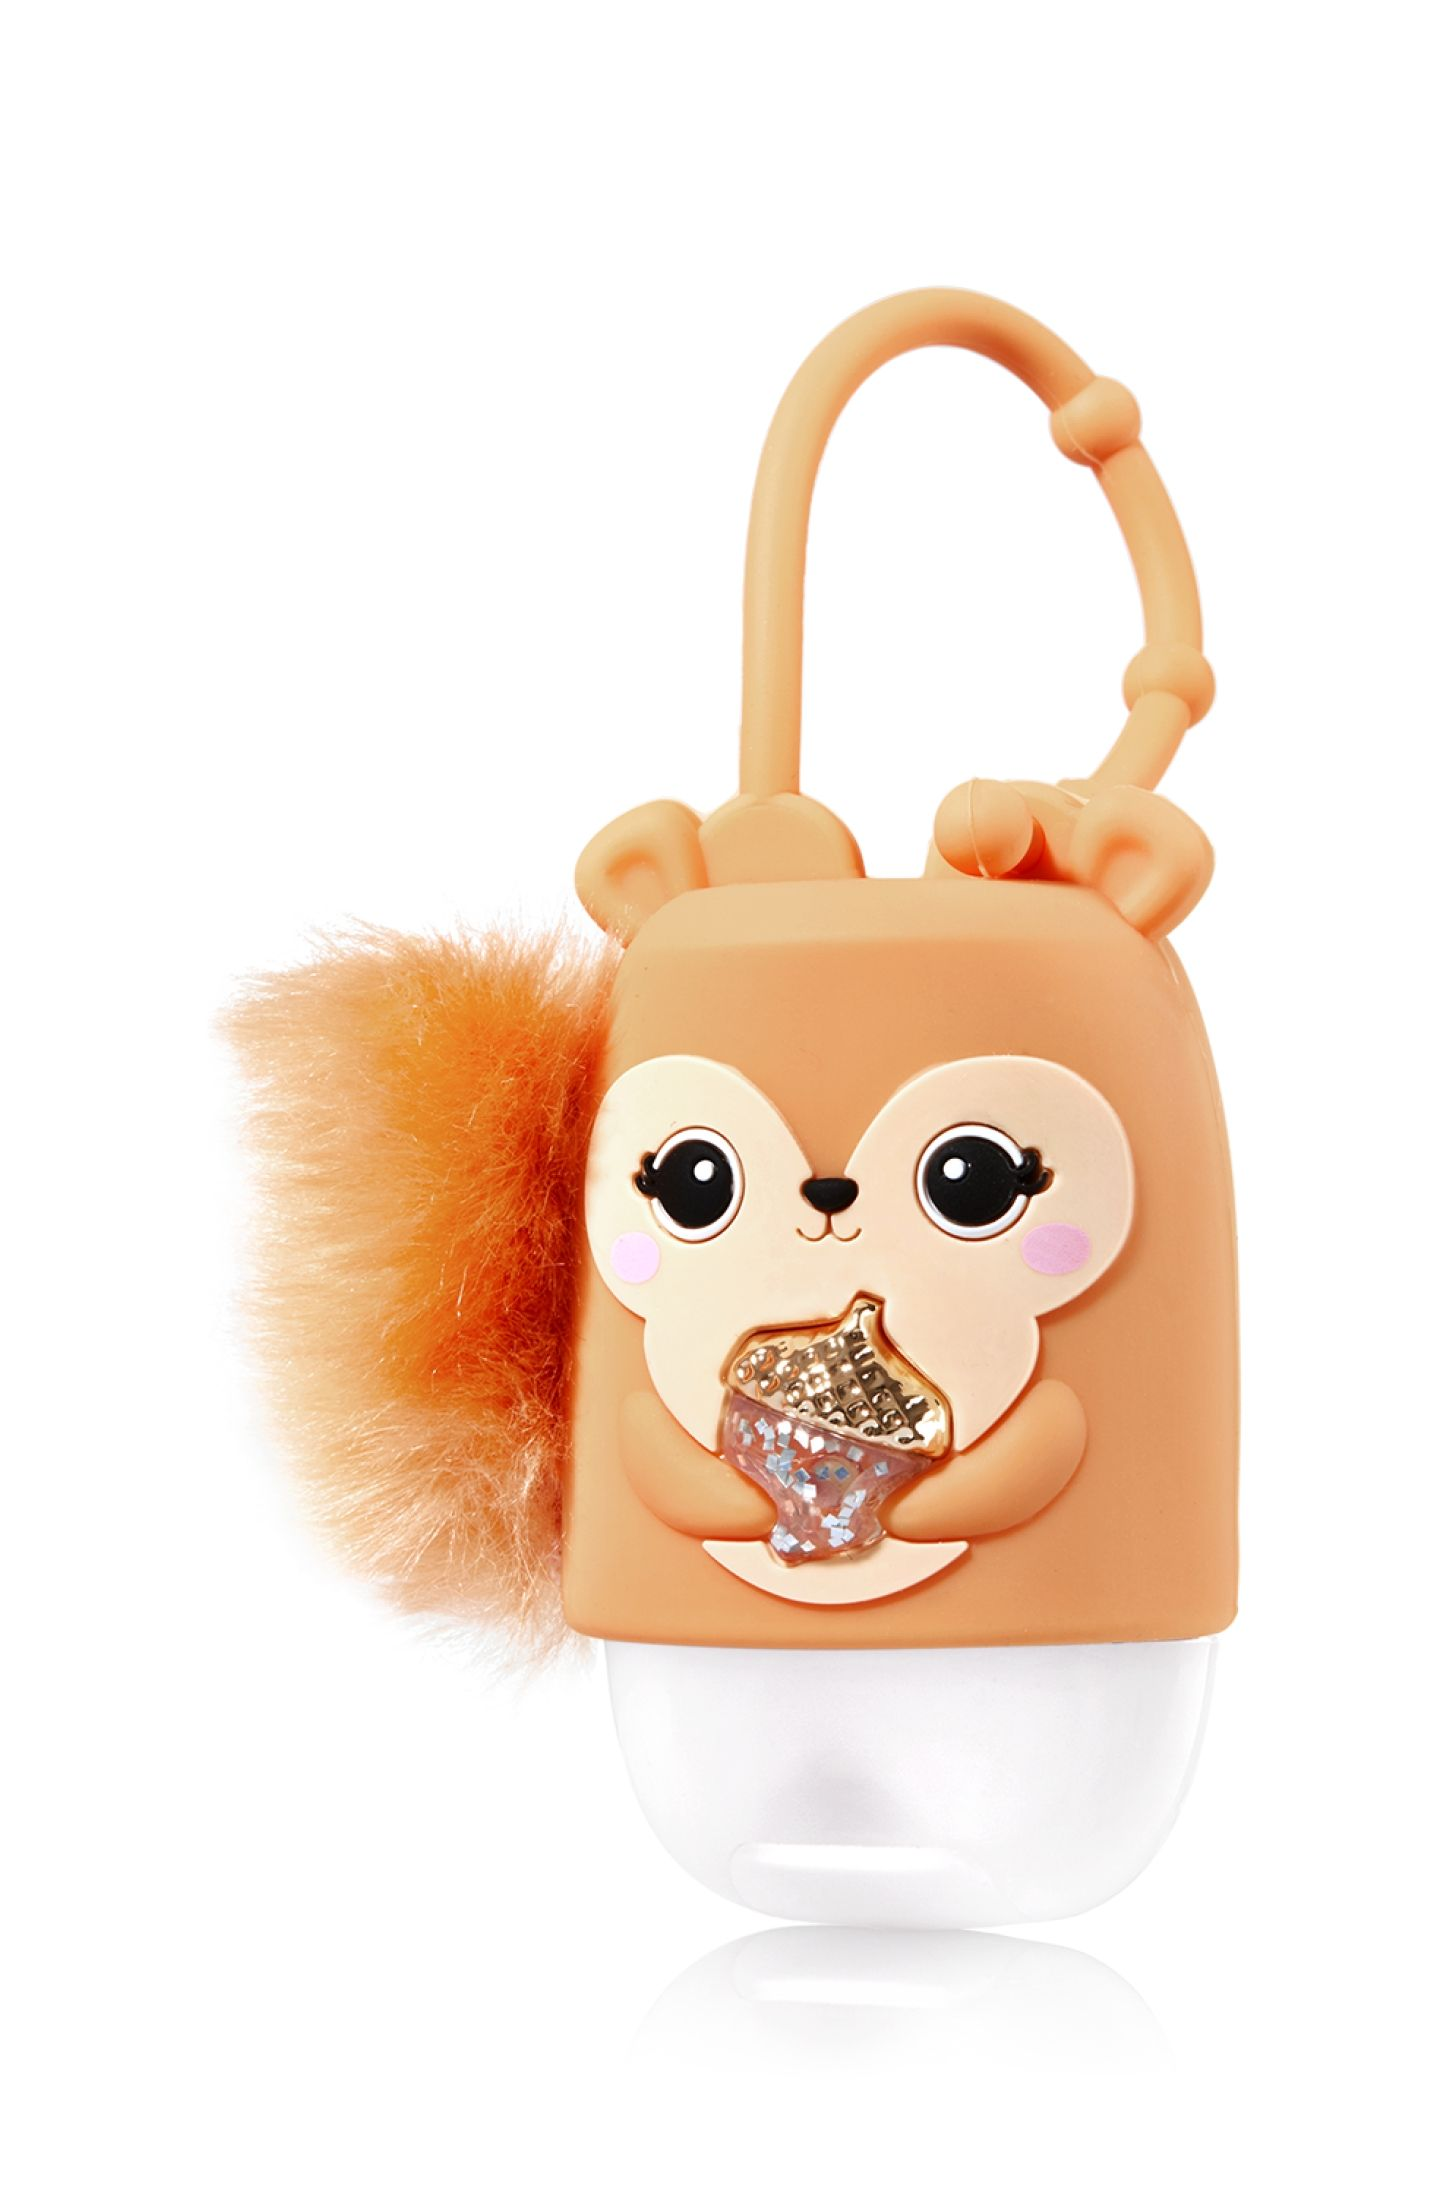 Squirrel Light Up Pocketbac Holder Bath Body Works Bath